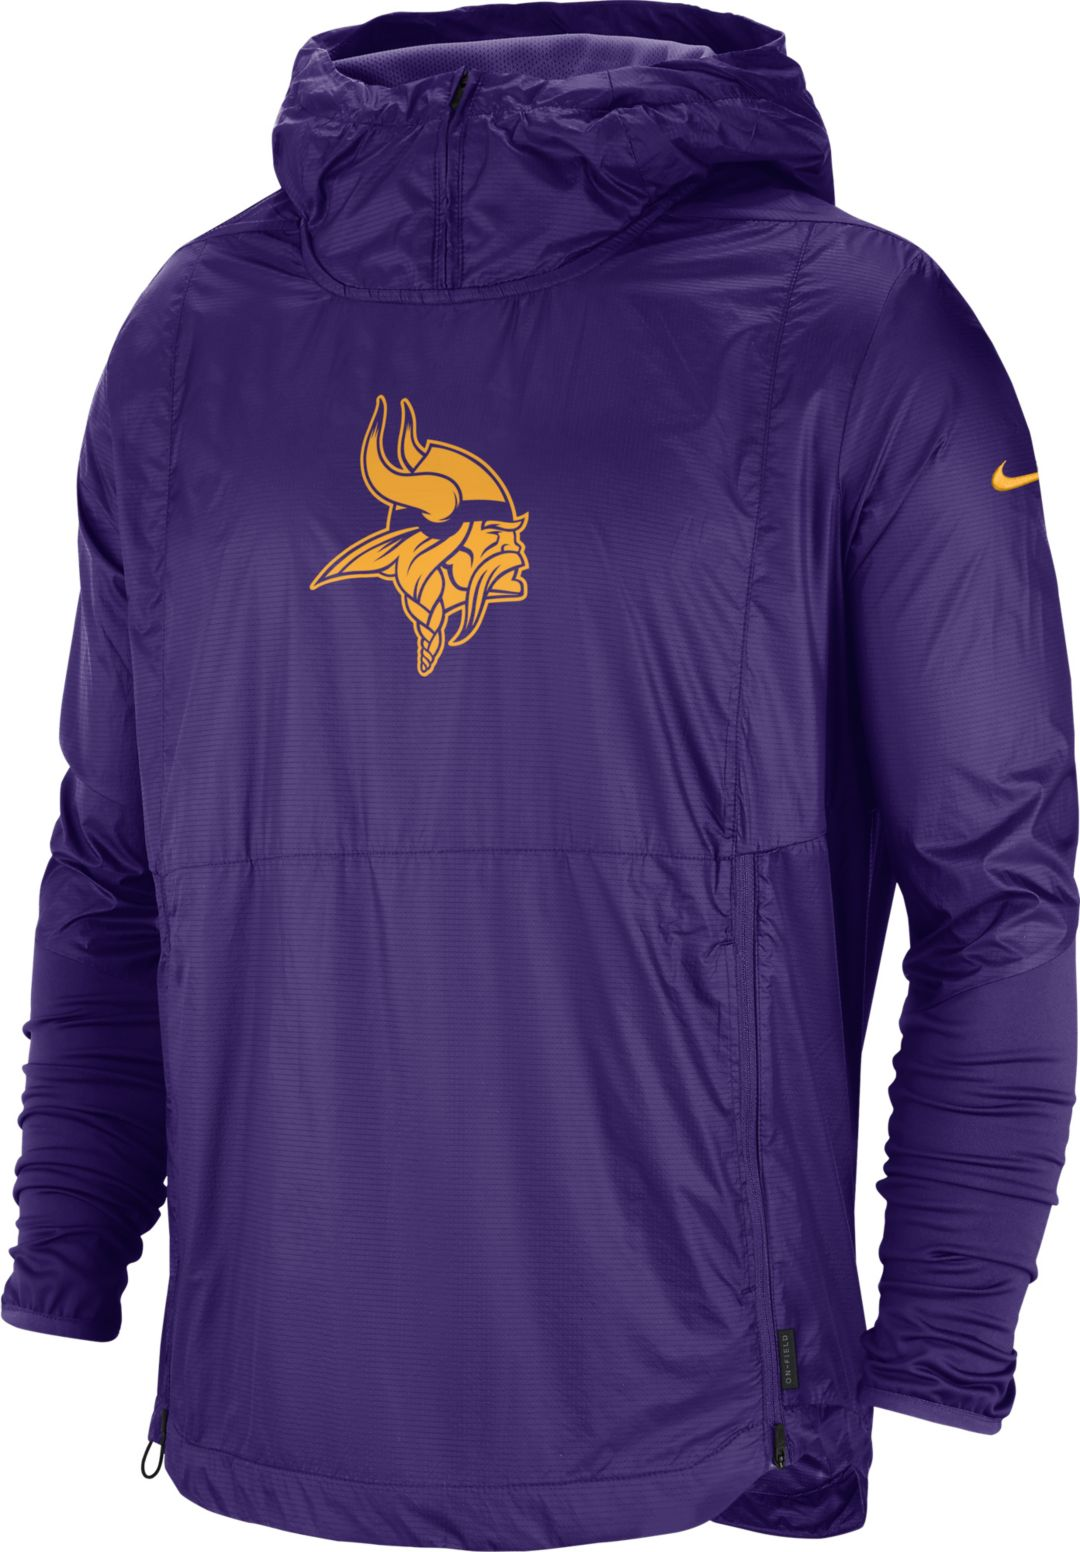 los angeles 52ac5 d0420 Nike Men's Minnesota Vikings Sideline Repel Player Purple Jacket